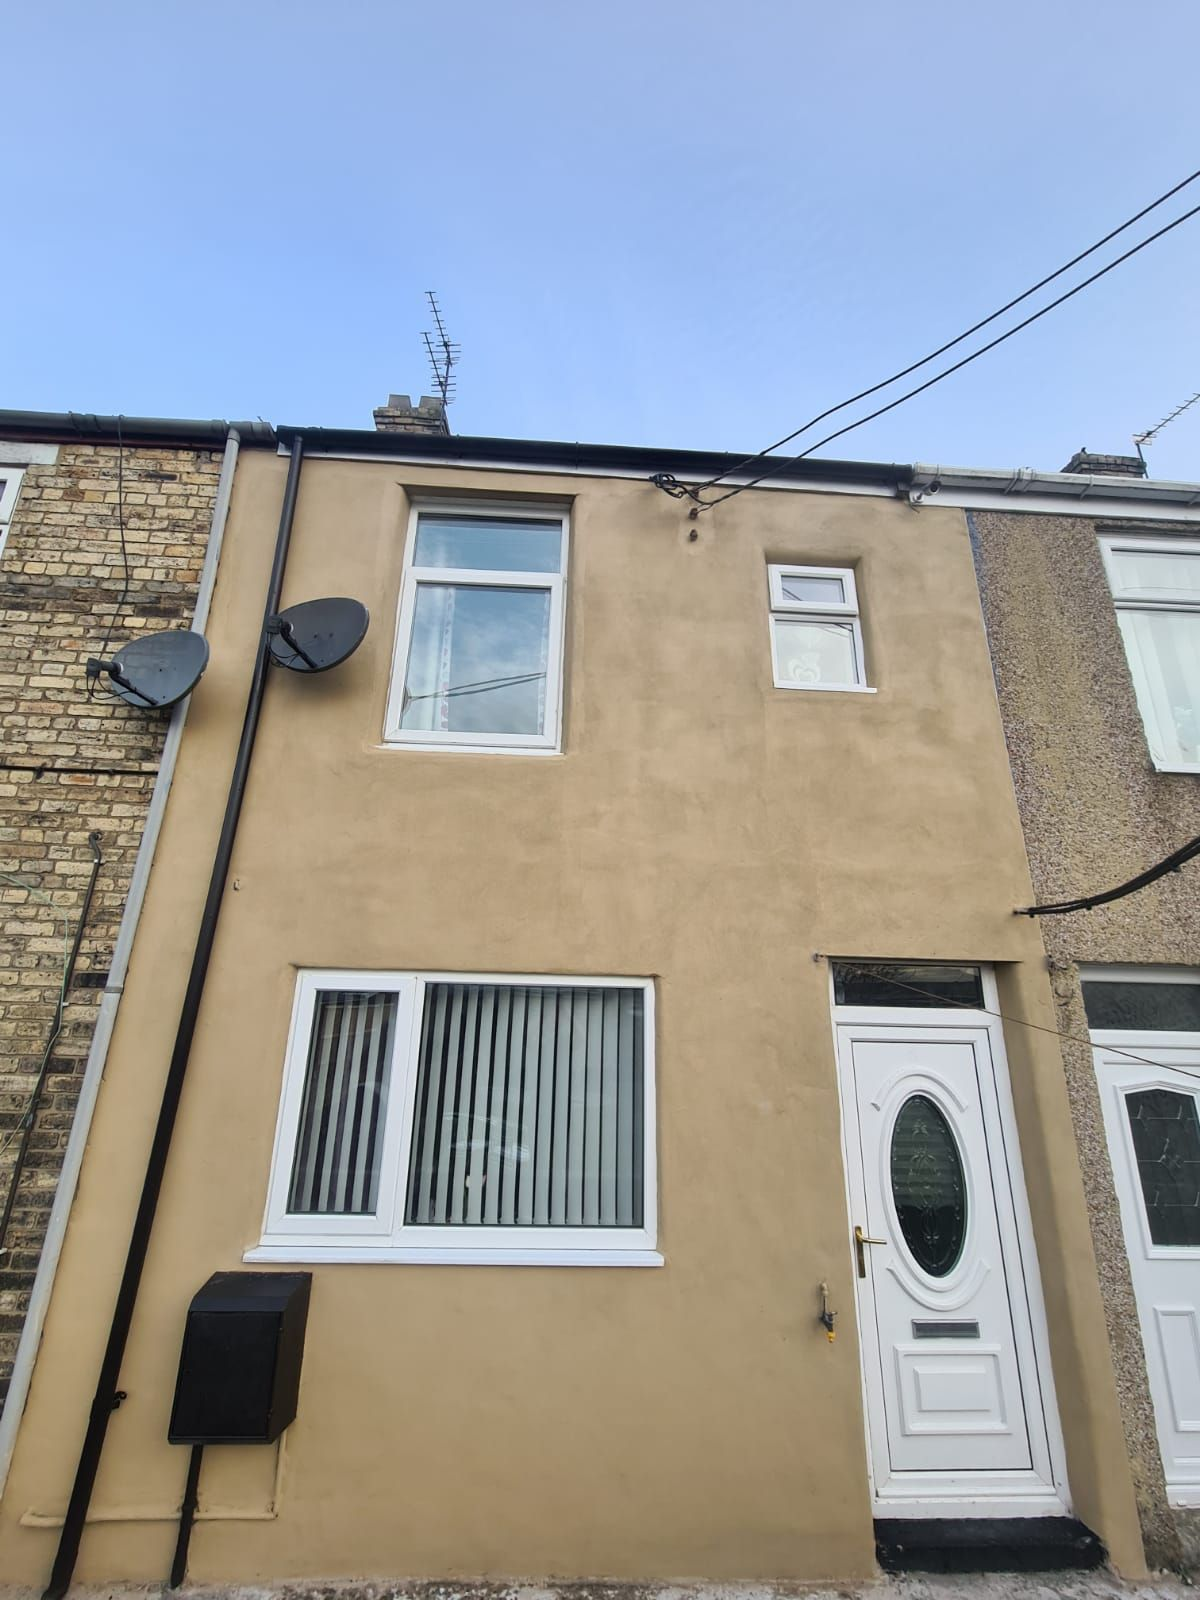 3 bedroom mid terraced house Sale Agreed in Roddymoor - Photograph 33.